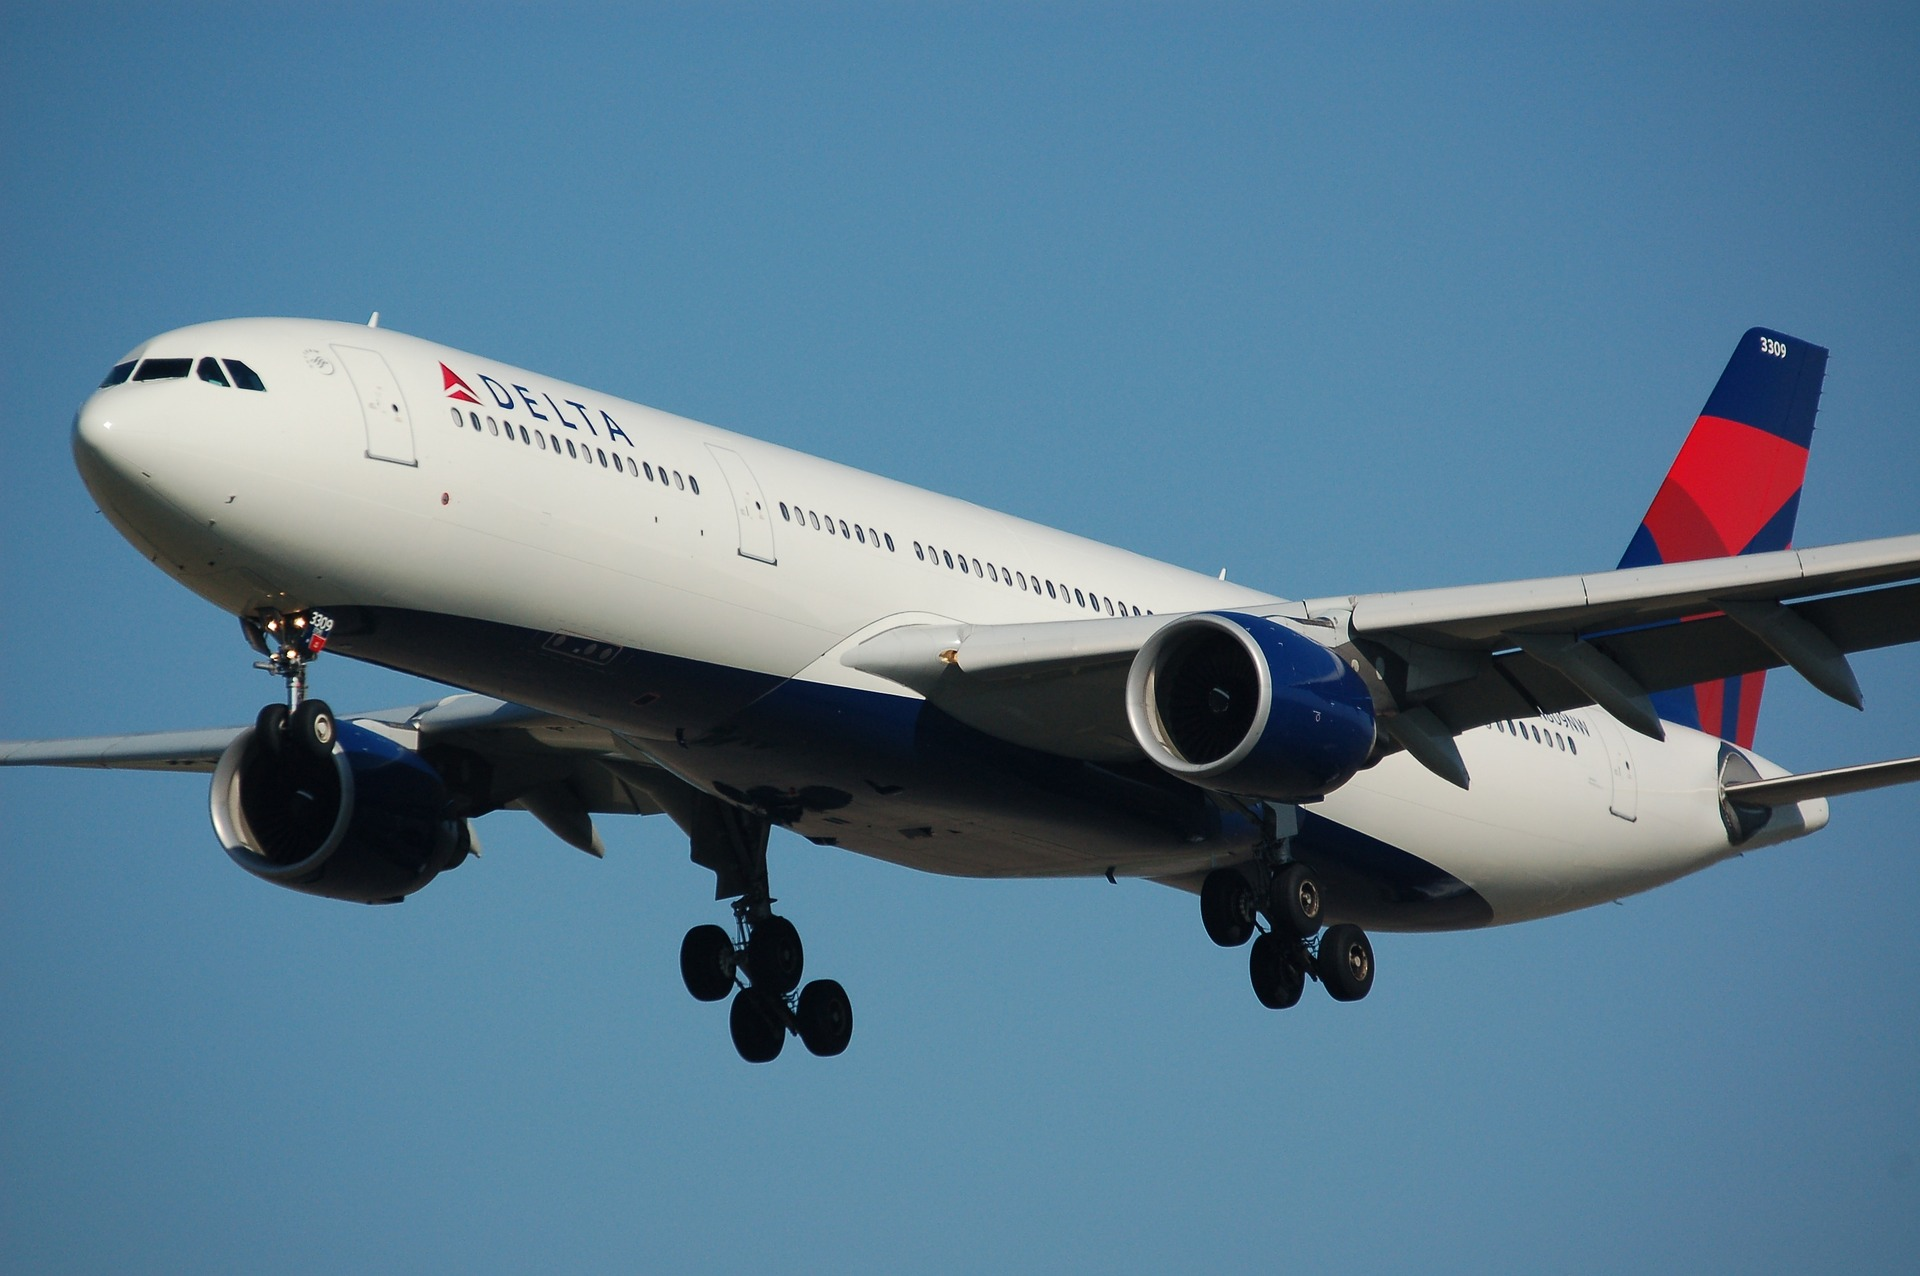 Your in-flight broadband will soon be speedier with Gogo